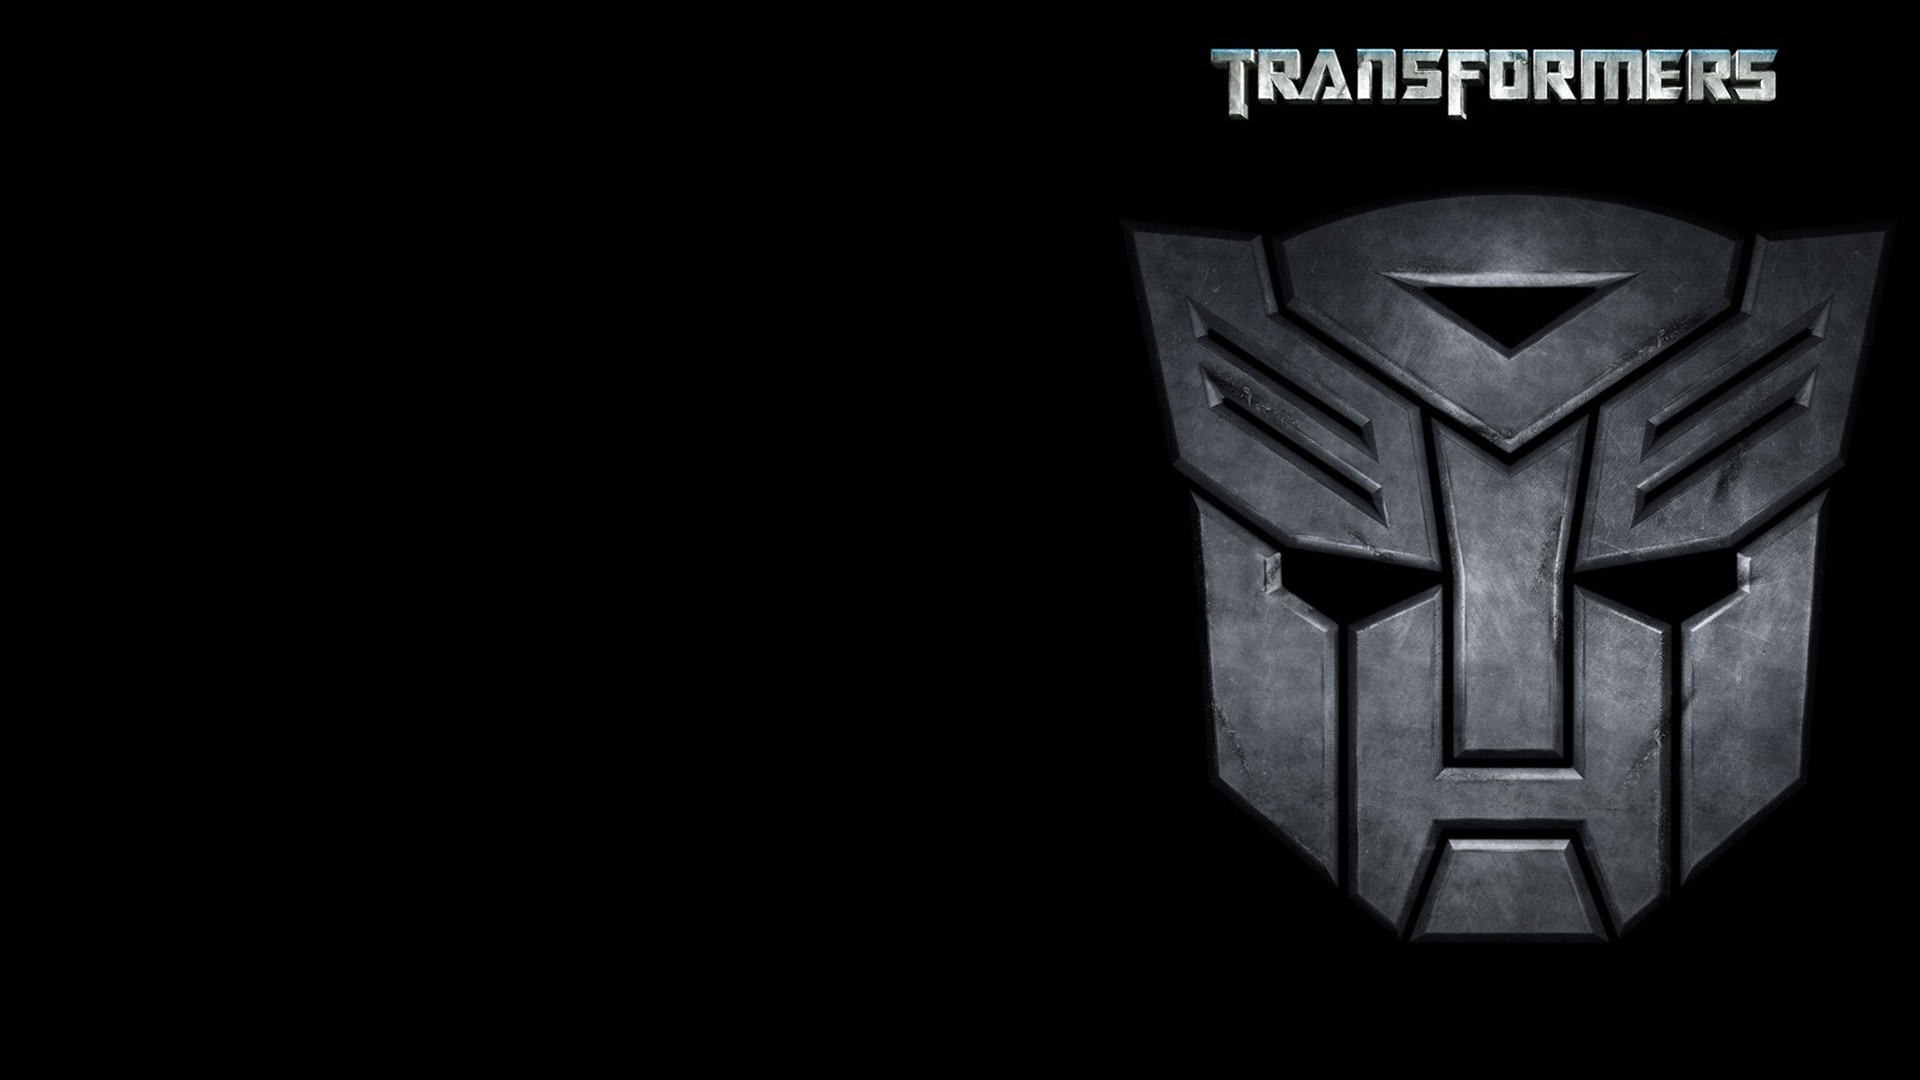 Transformers Autobot Logo Exclusive HD Wallpapers #5141